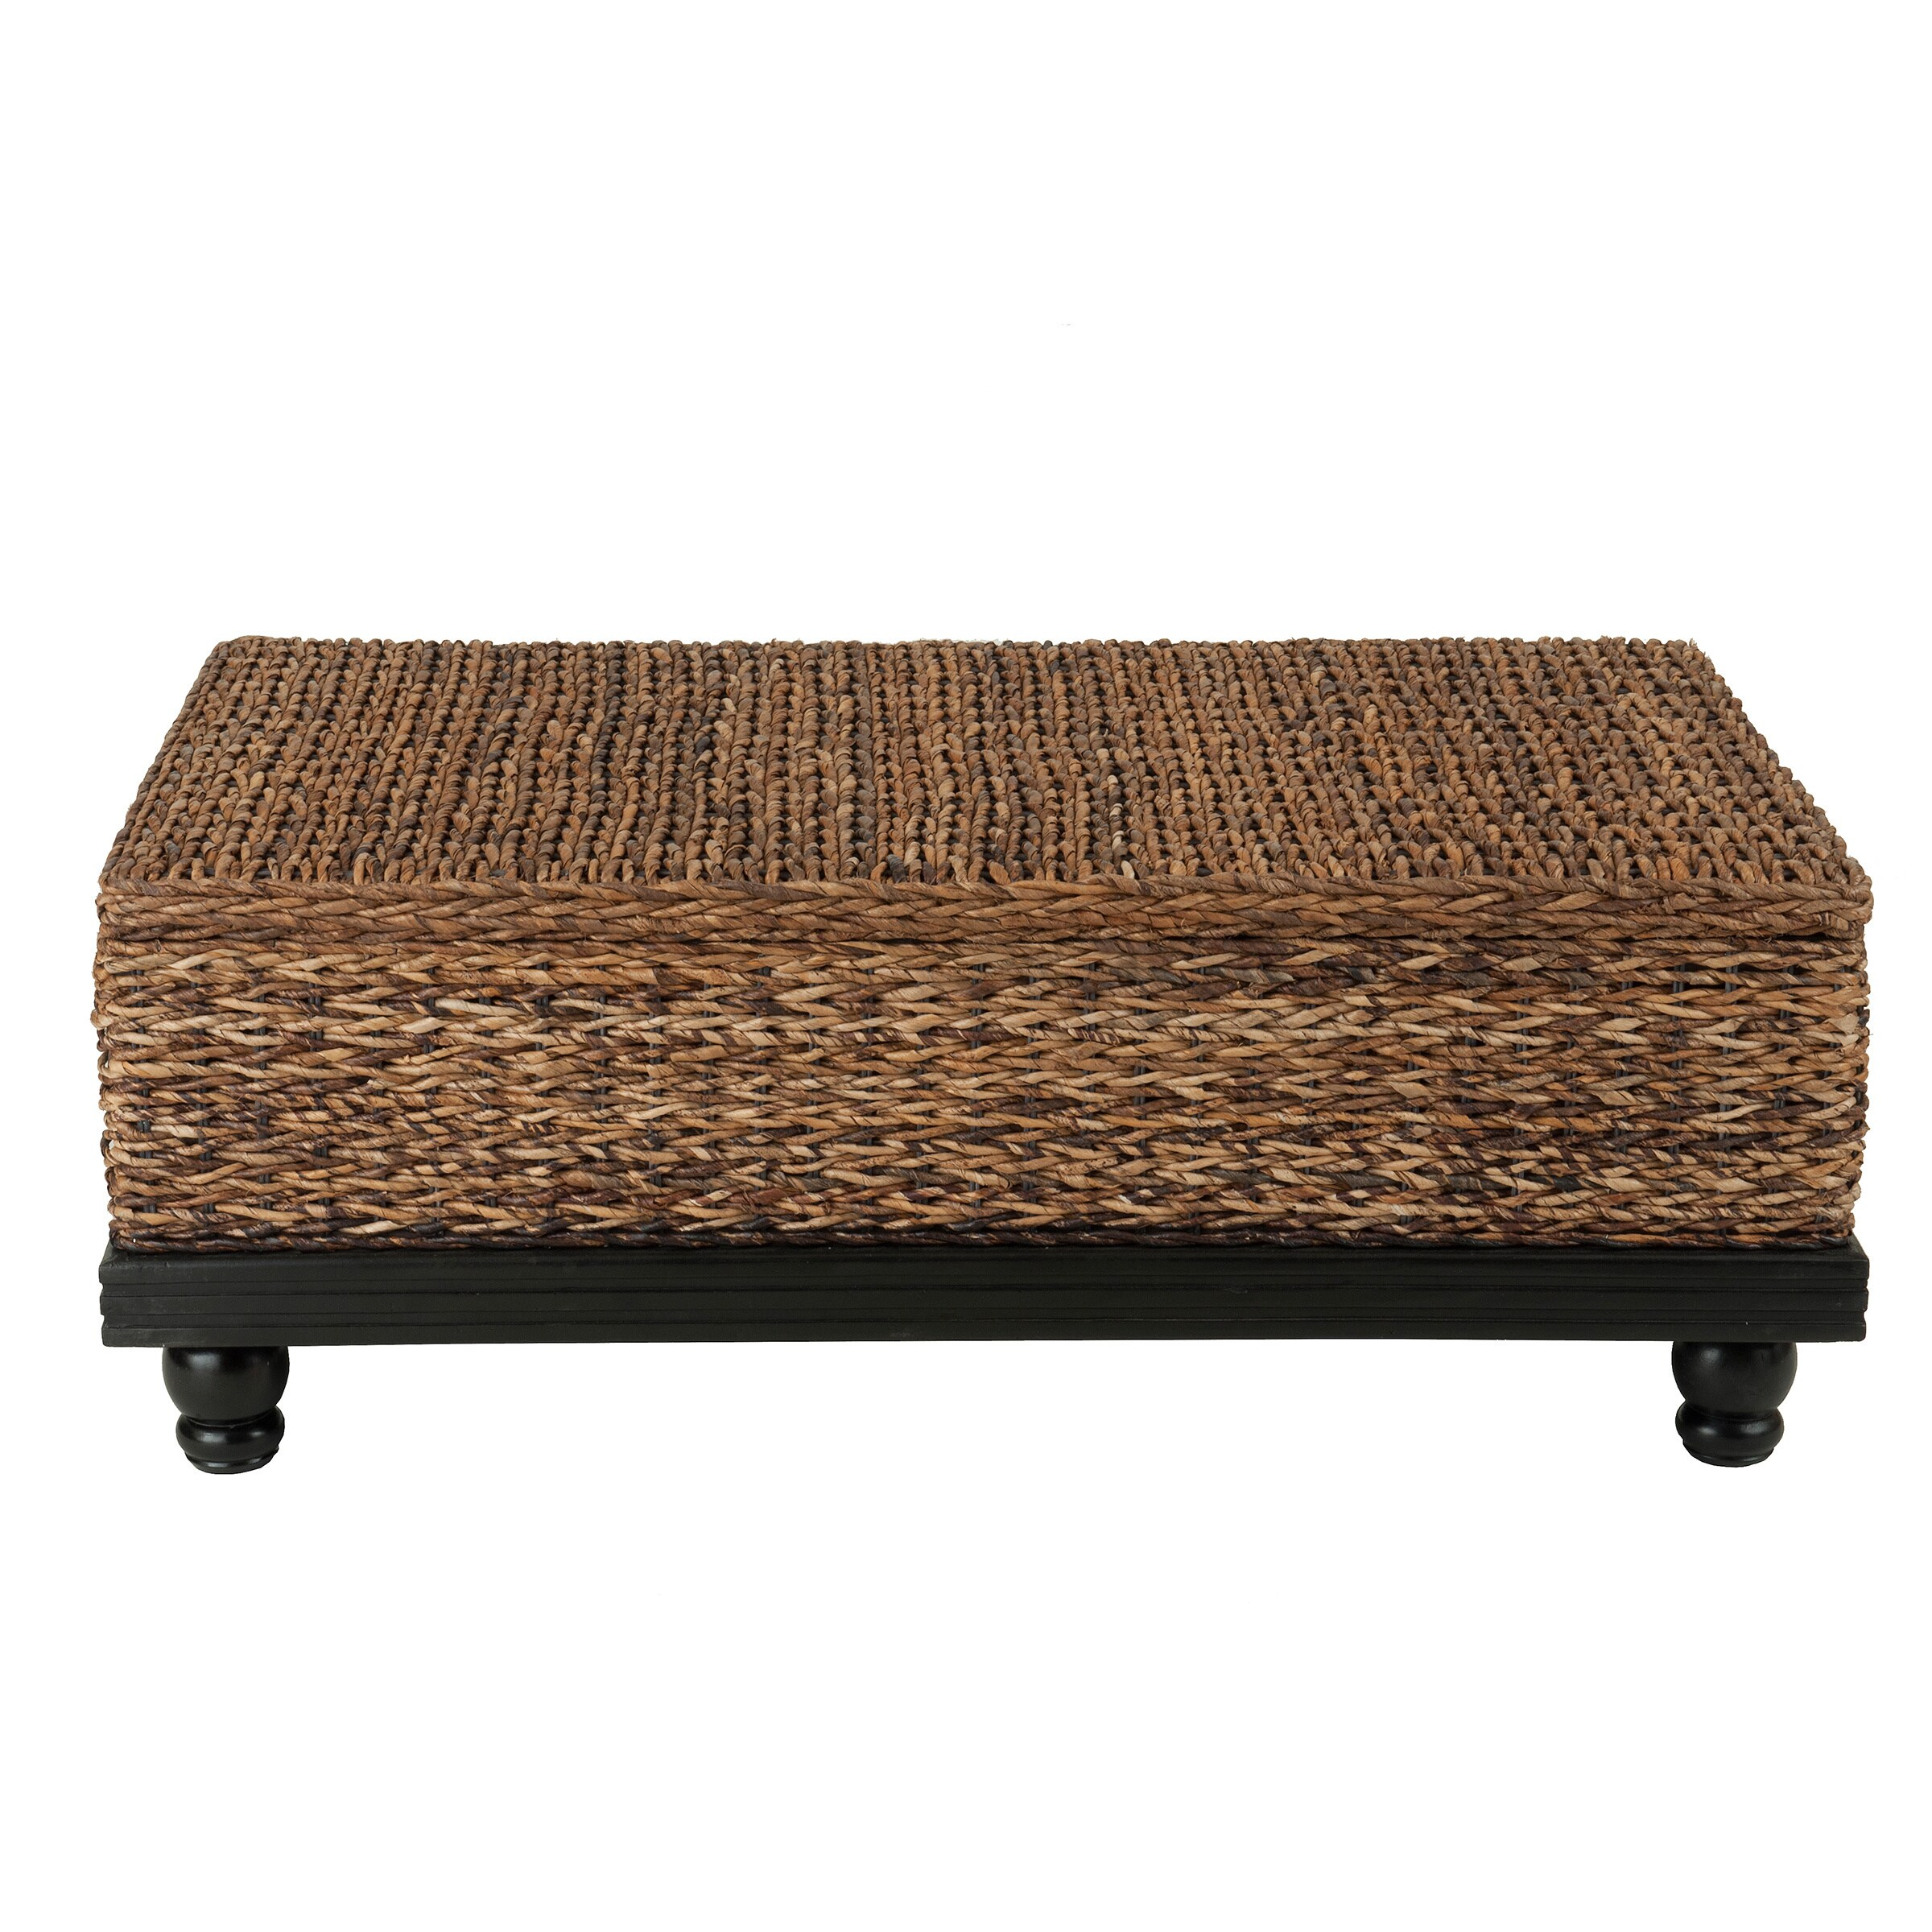 Meticulously Woven Brown Abaca Coffee Table With Storage Free Shipping Today 15521164